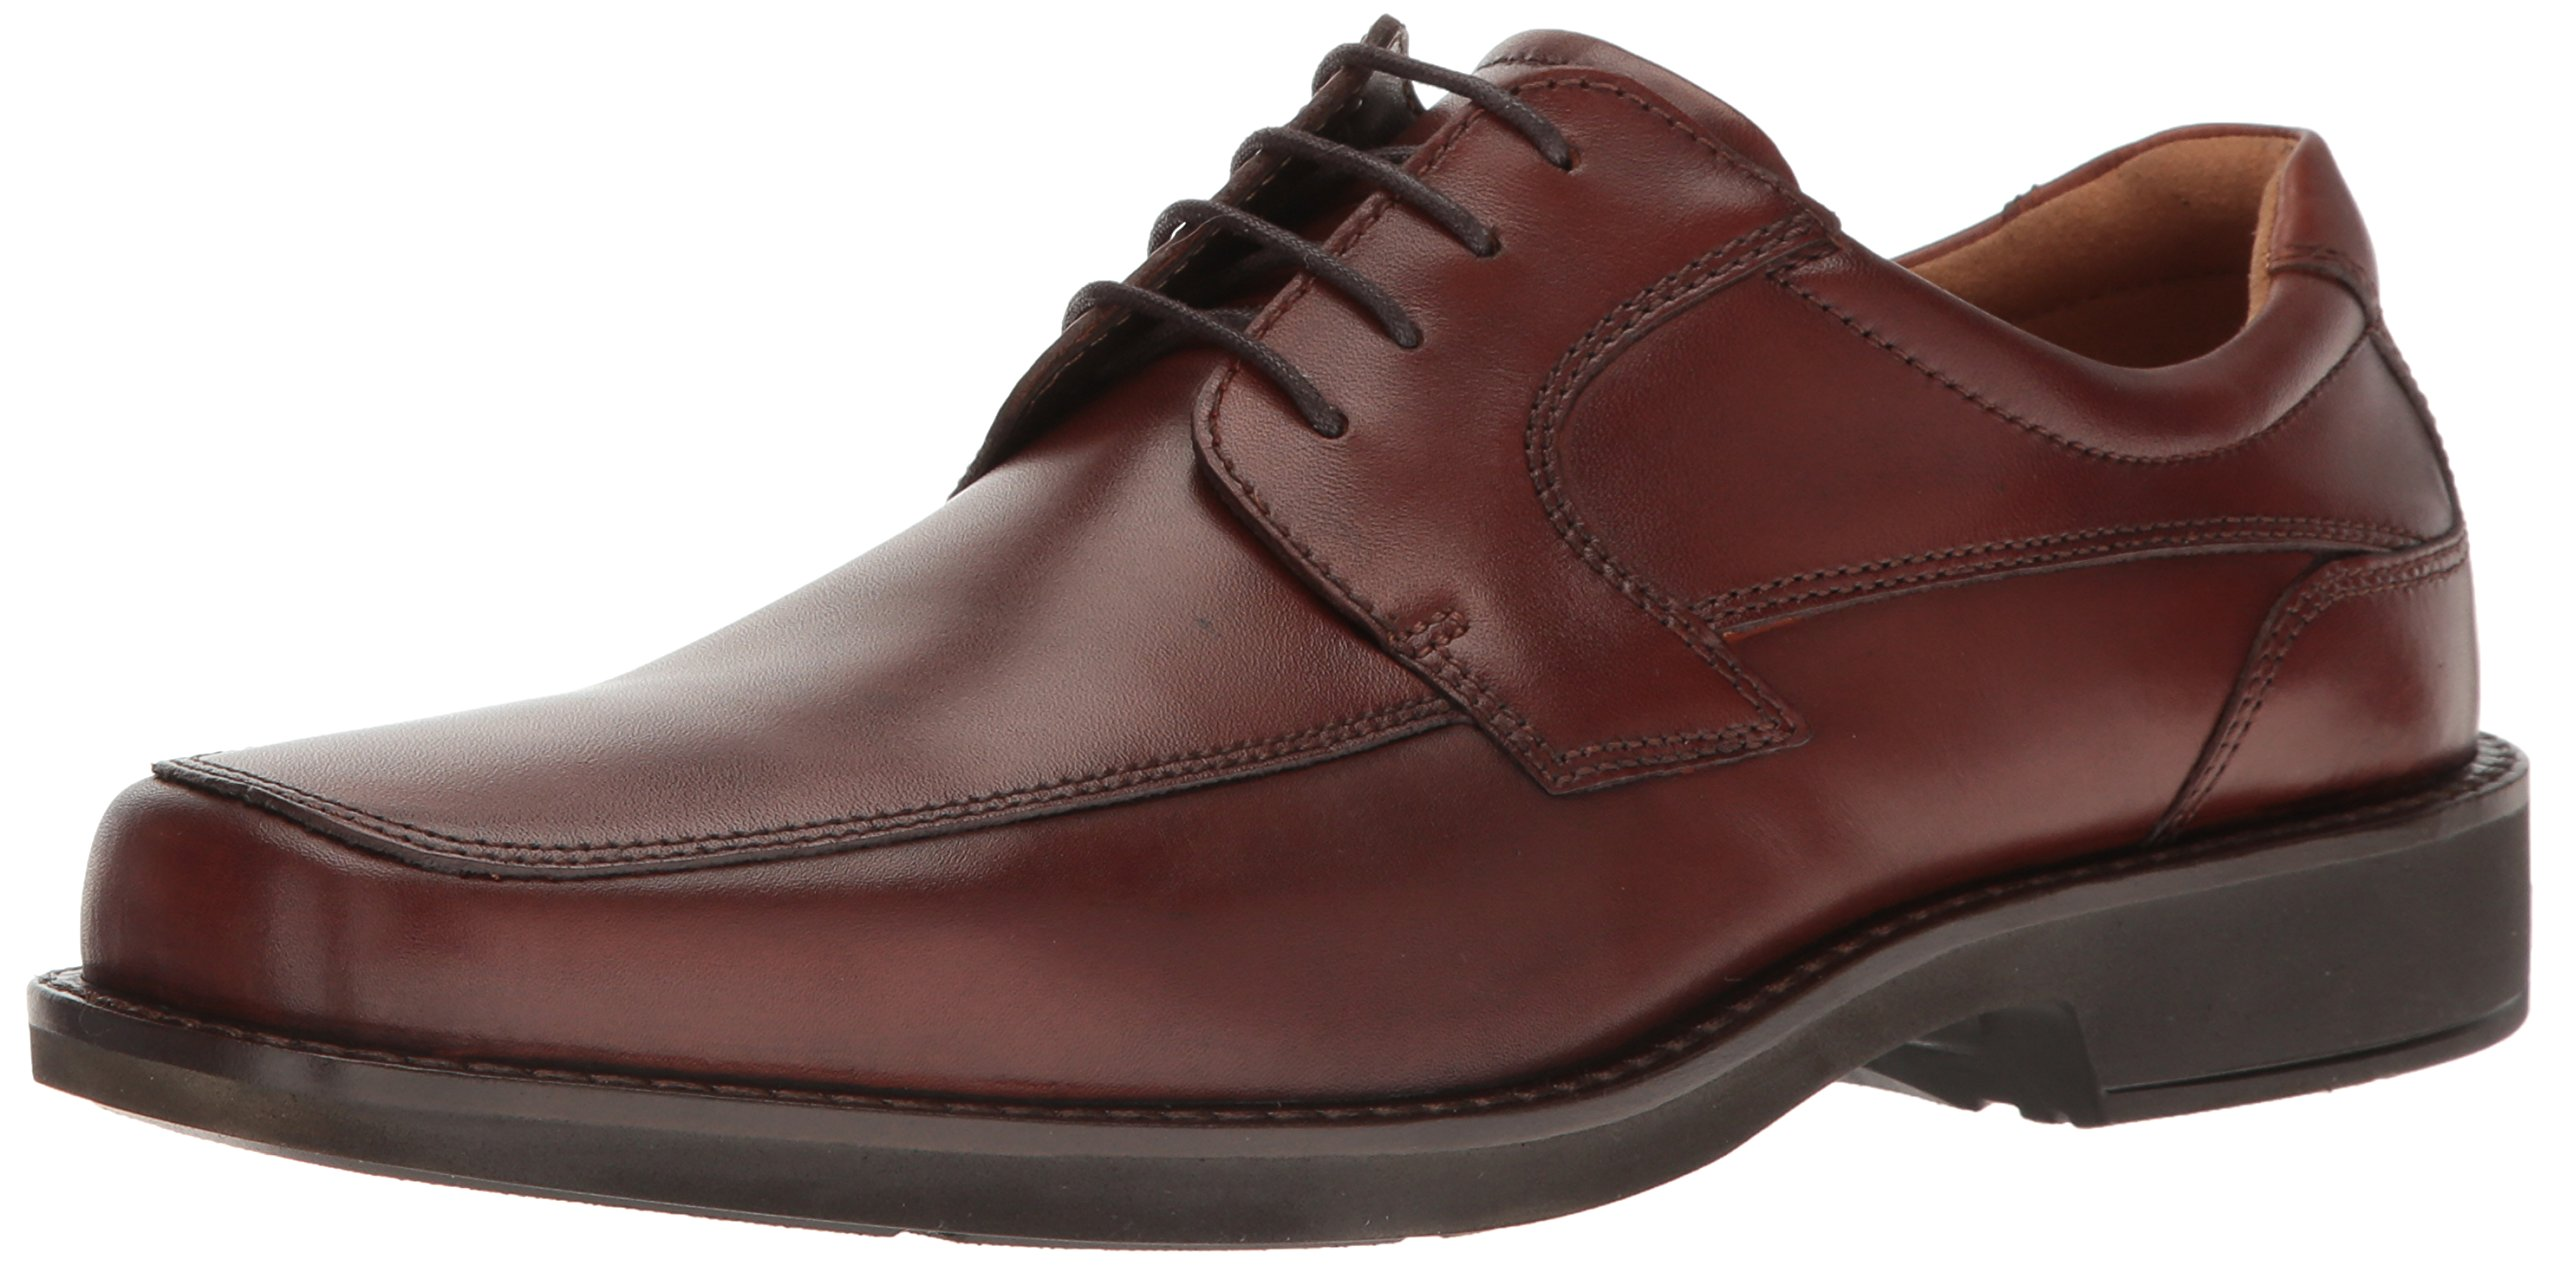 ECCO Men's Seattle Apron Toe Tie Oxford, Cognac/Brown, 45 EU/11-11.5 M US